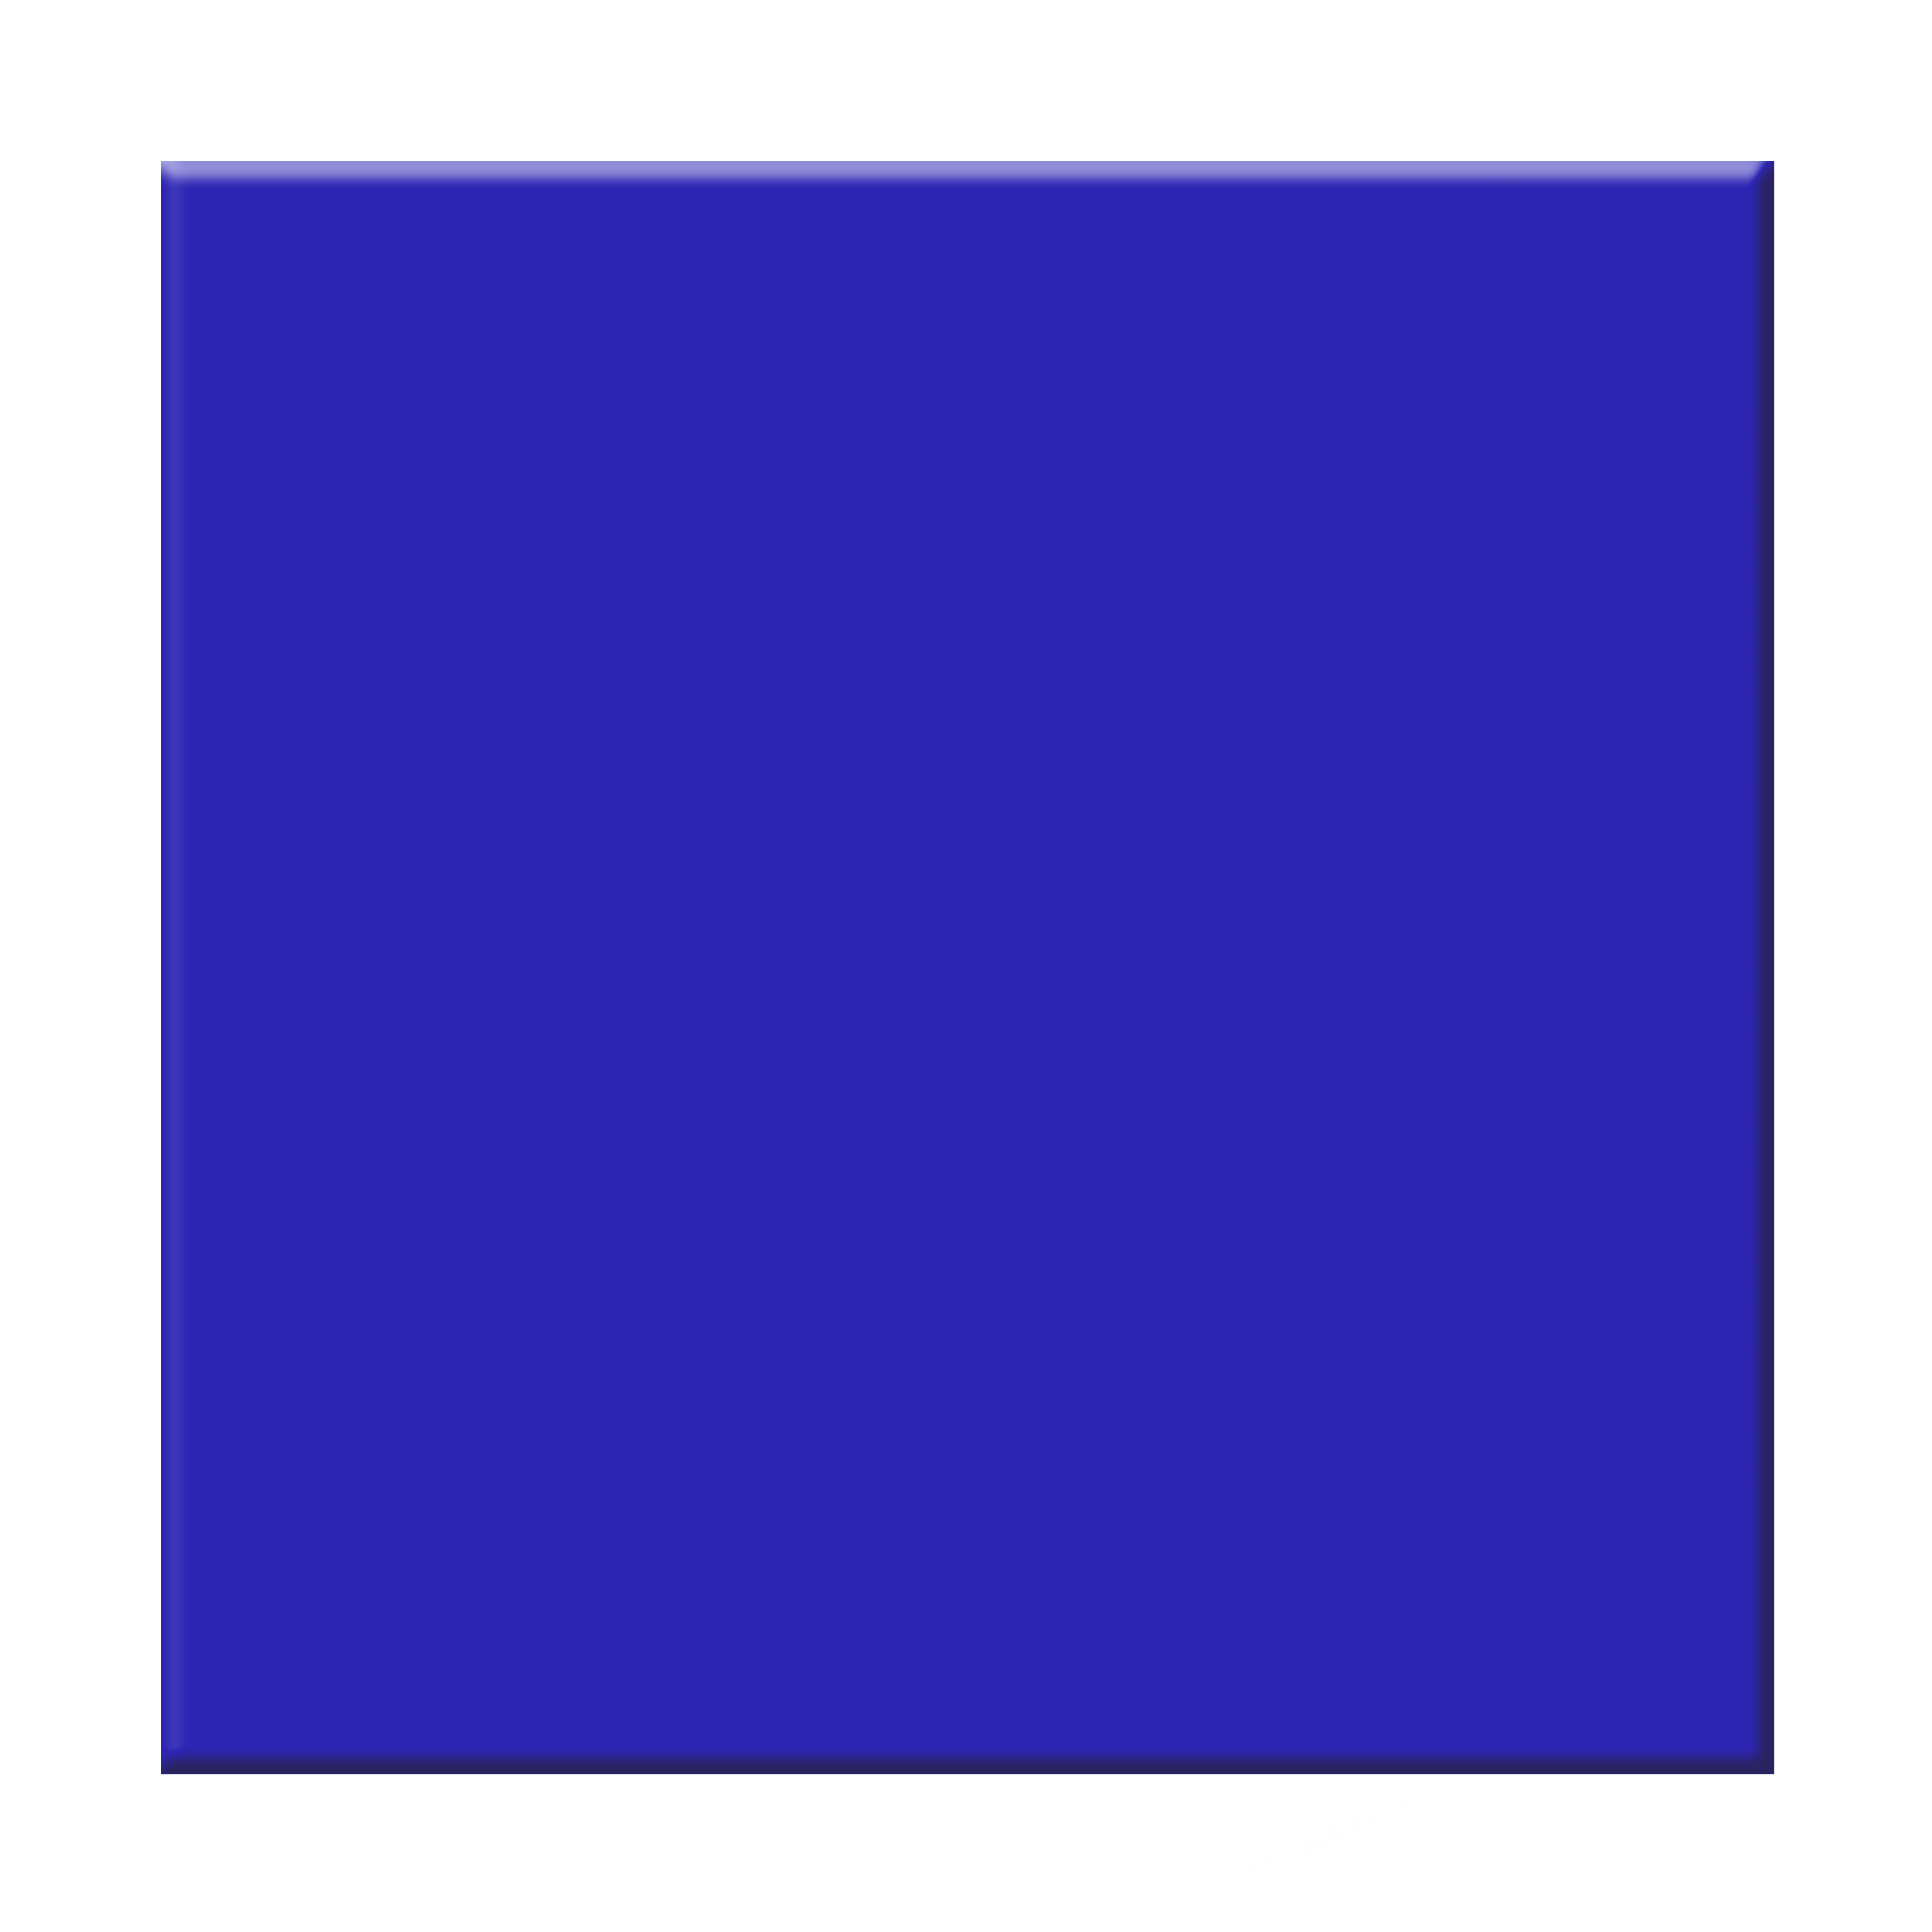 Blue square png. Image free icons and